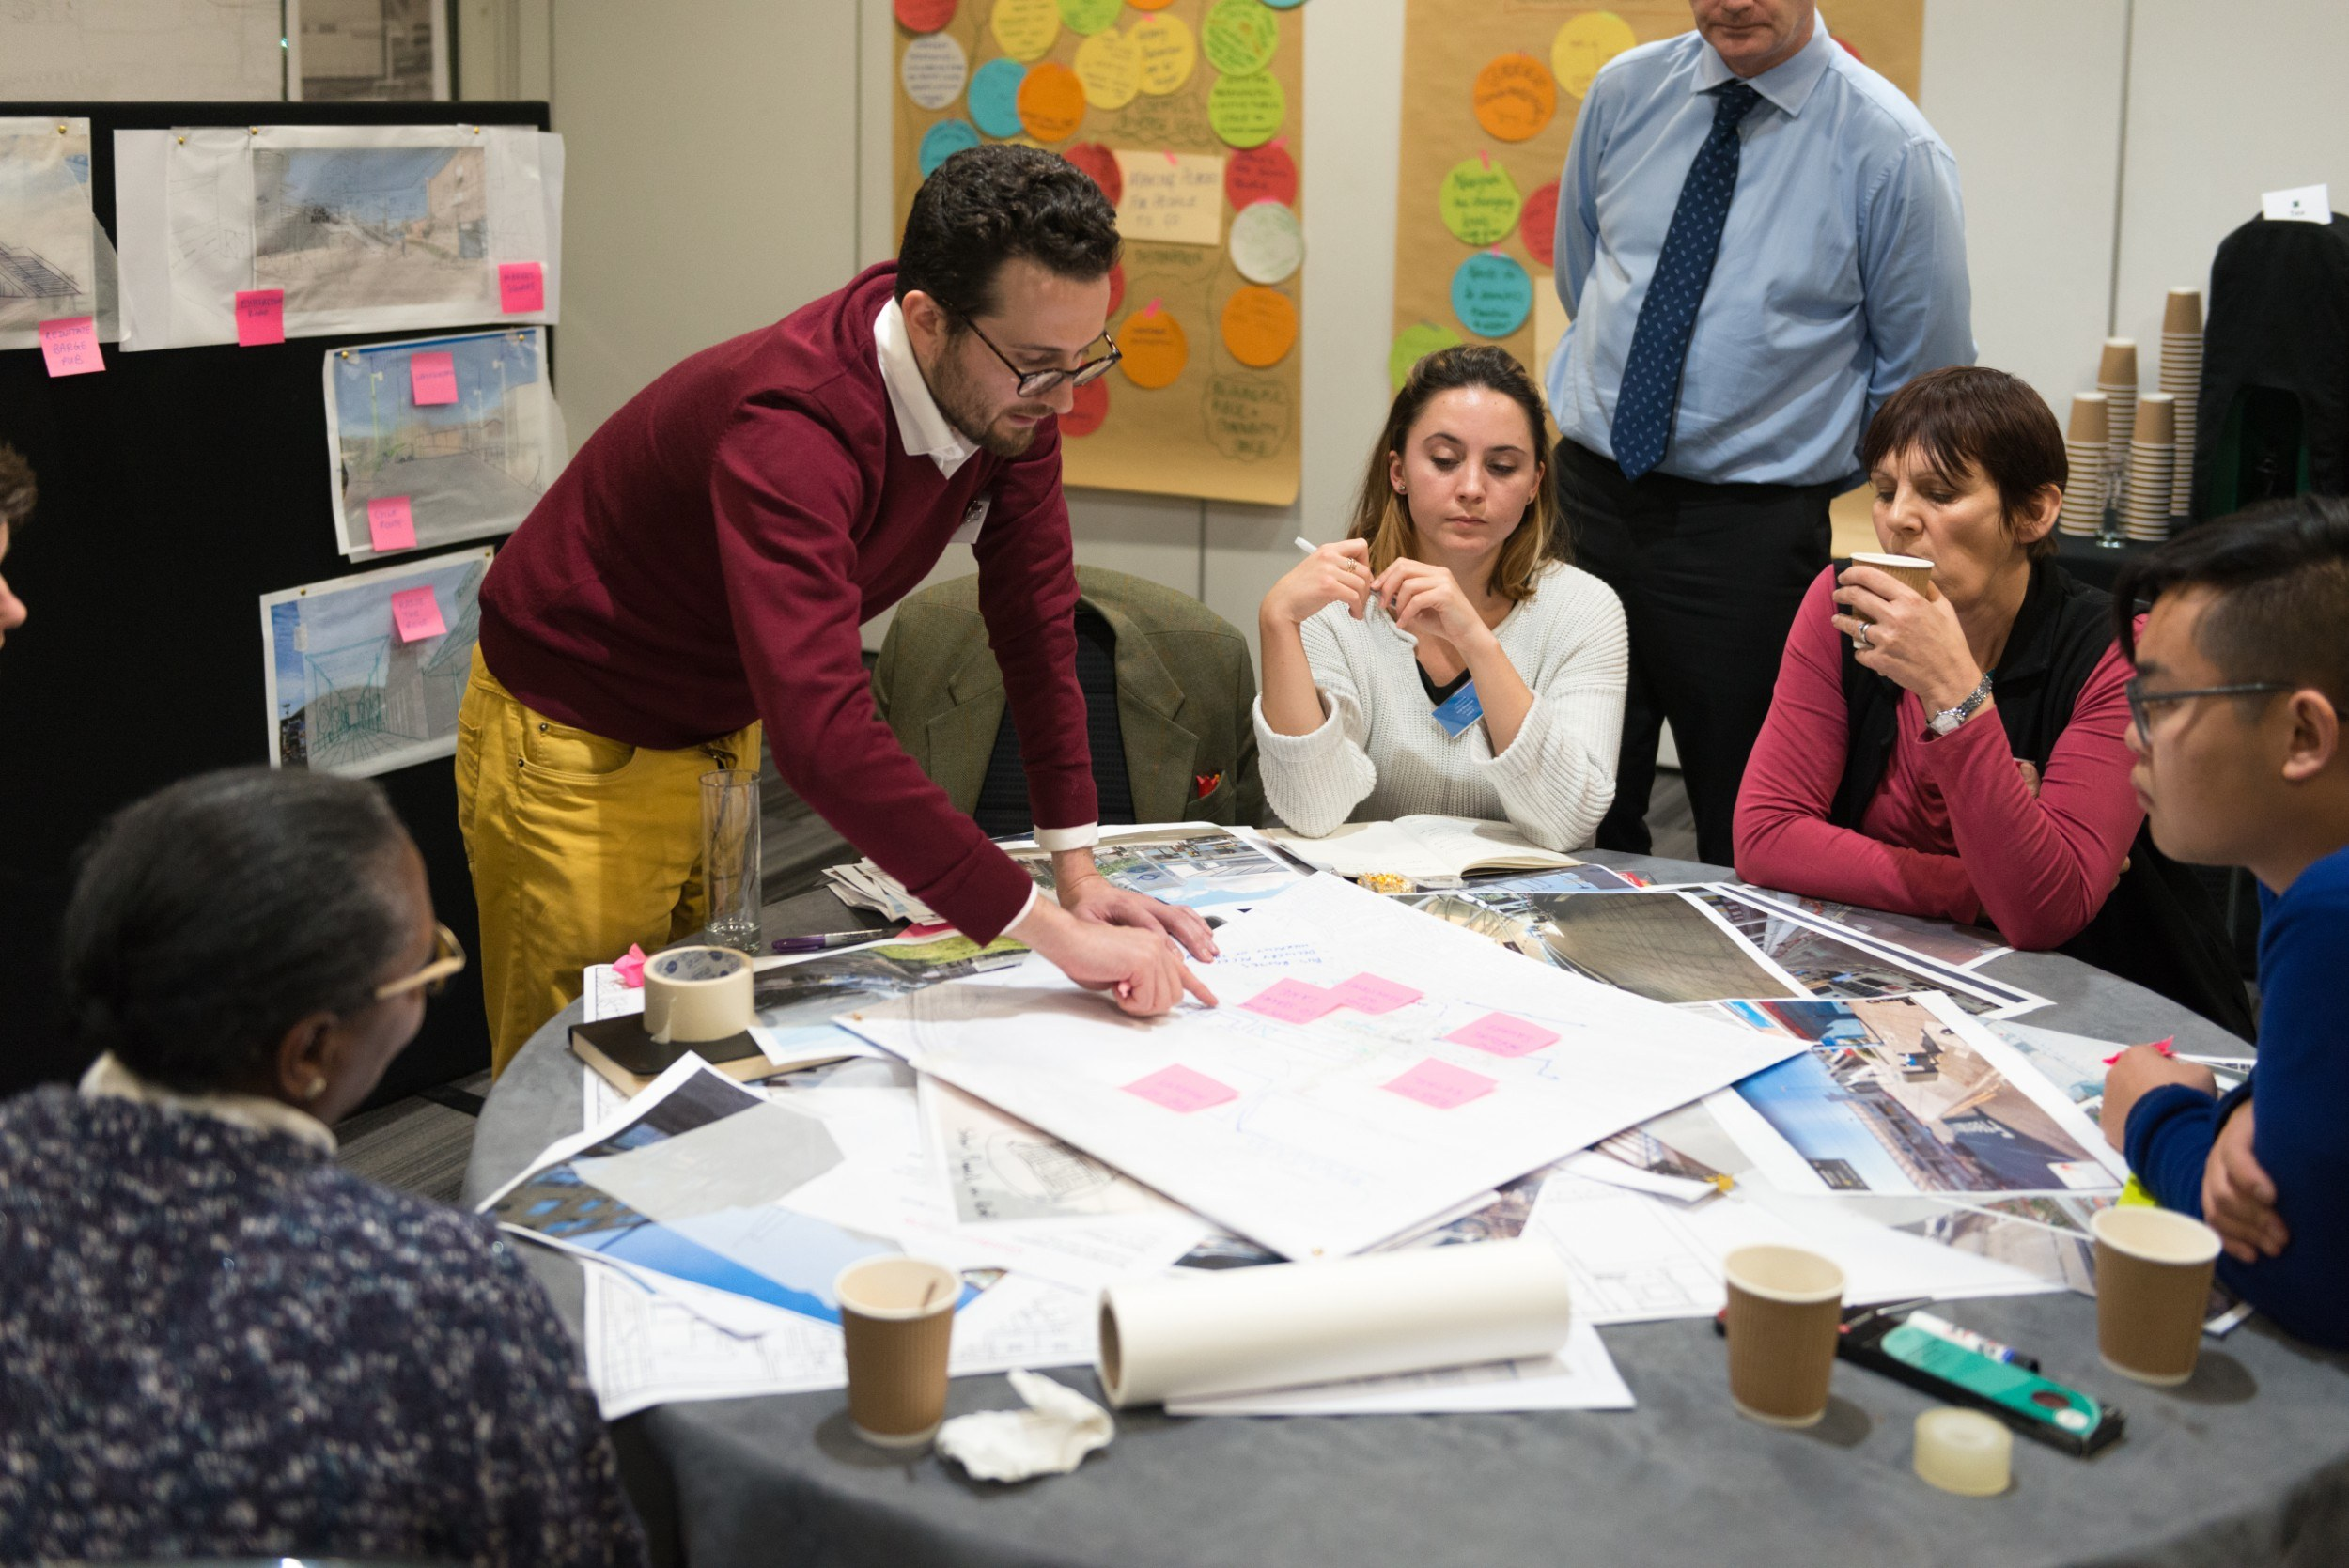 Group of people around a table poring over large pieces of paper